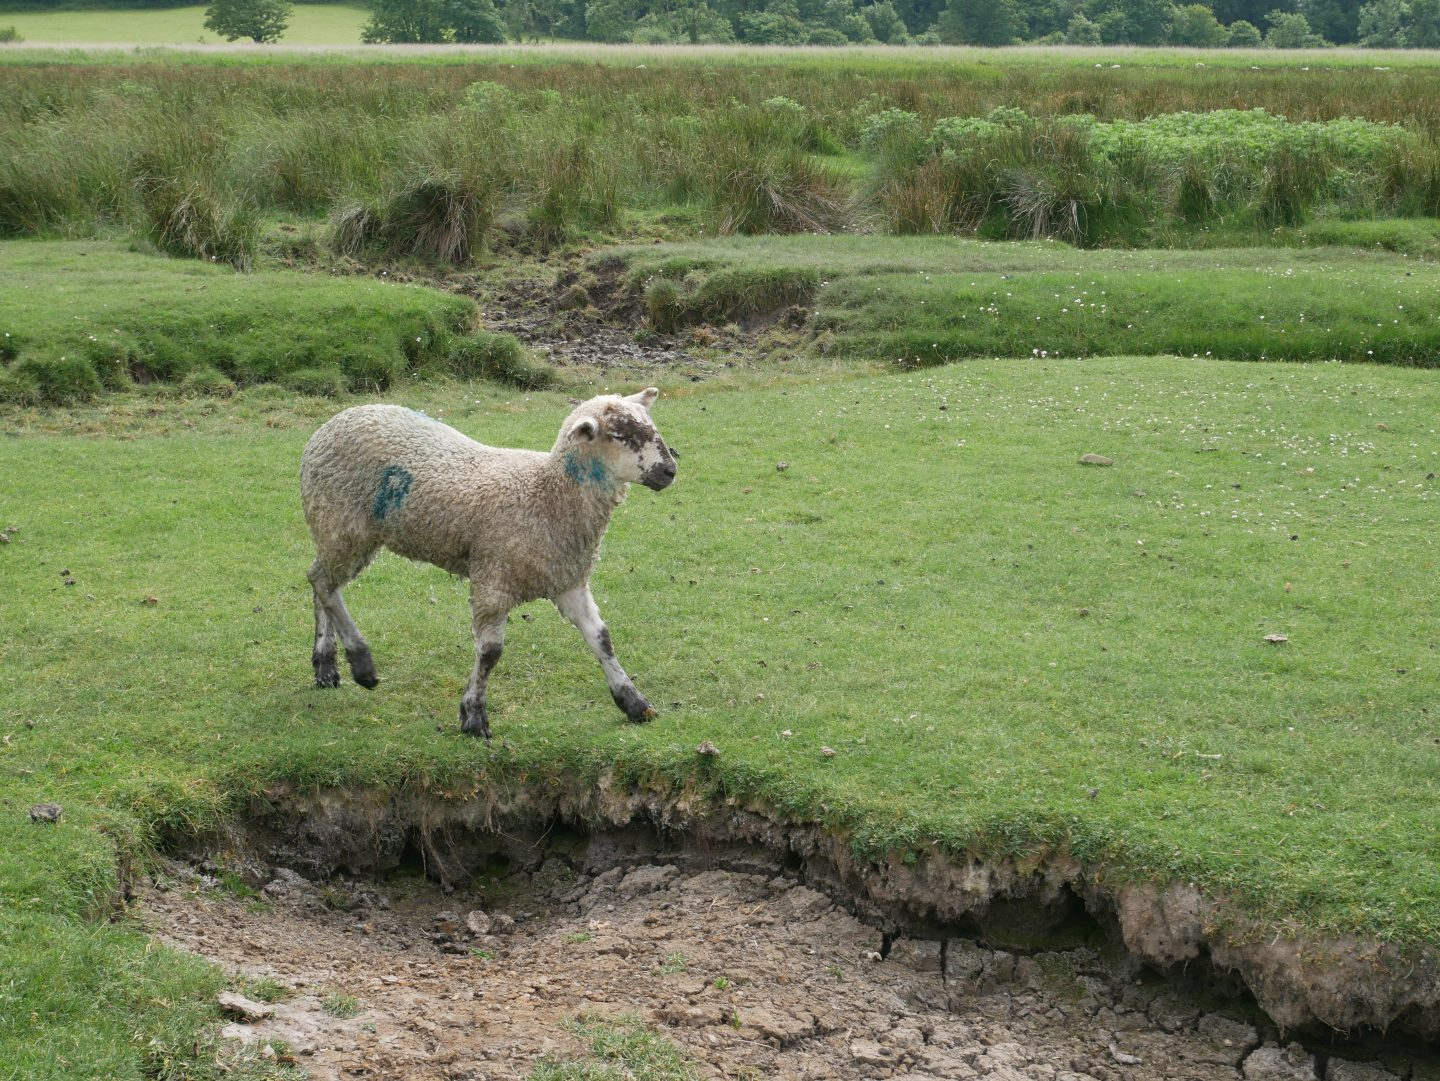 A Gower Salt Marsh Lamb, stamped so its origin can be traced.